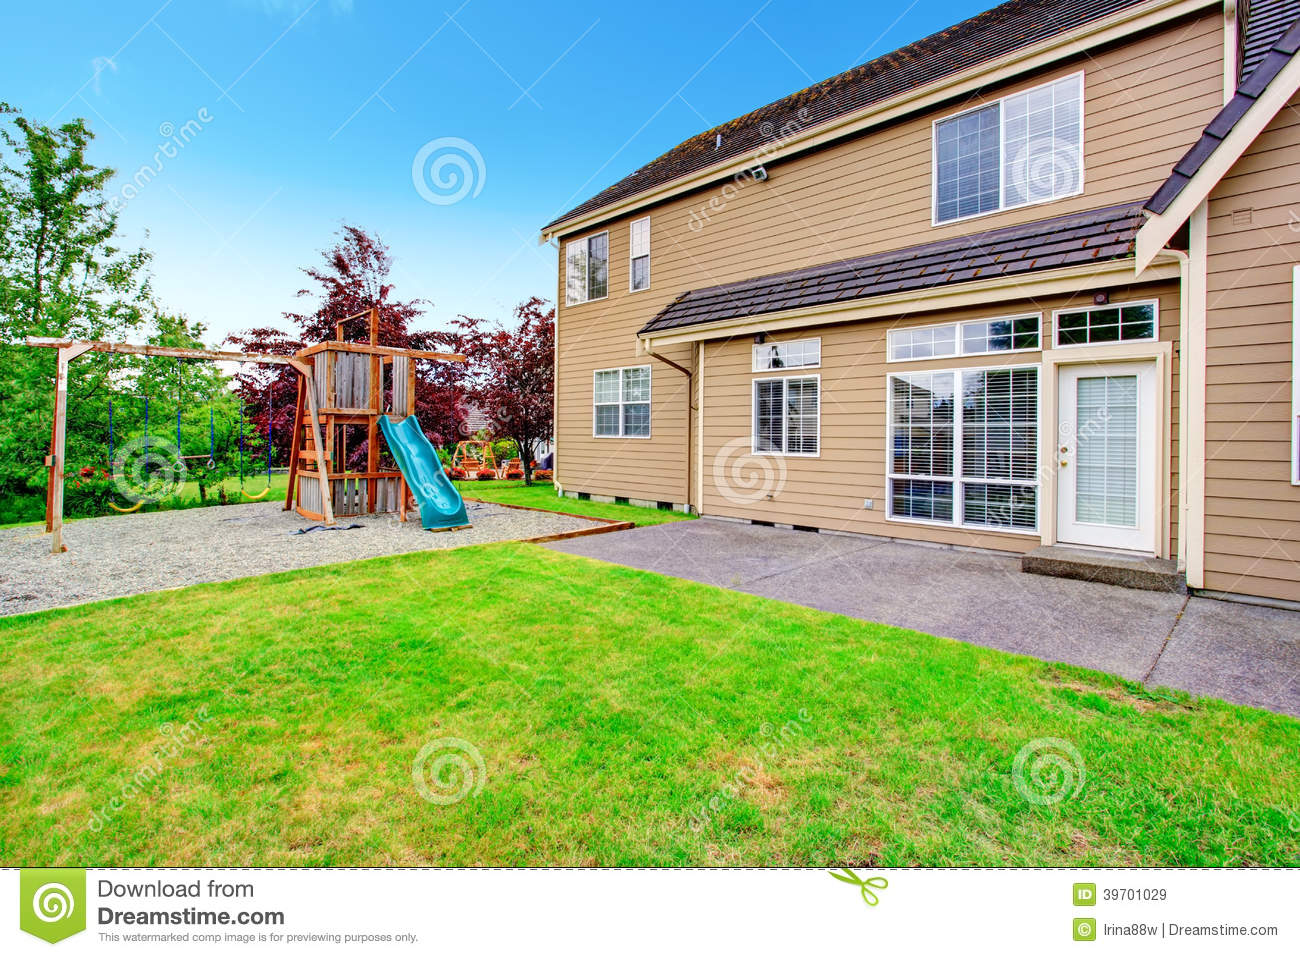 Backyard Deck. View Of Playground Stock Image - Image of ... on House Backyard Deck id=33062